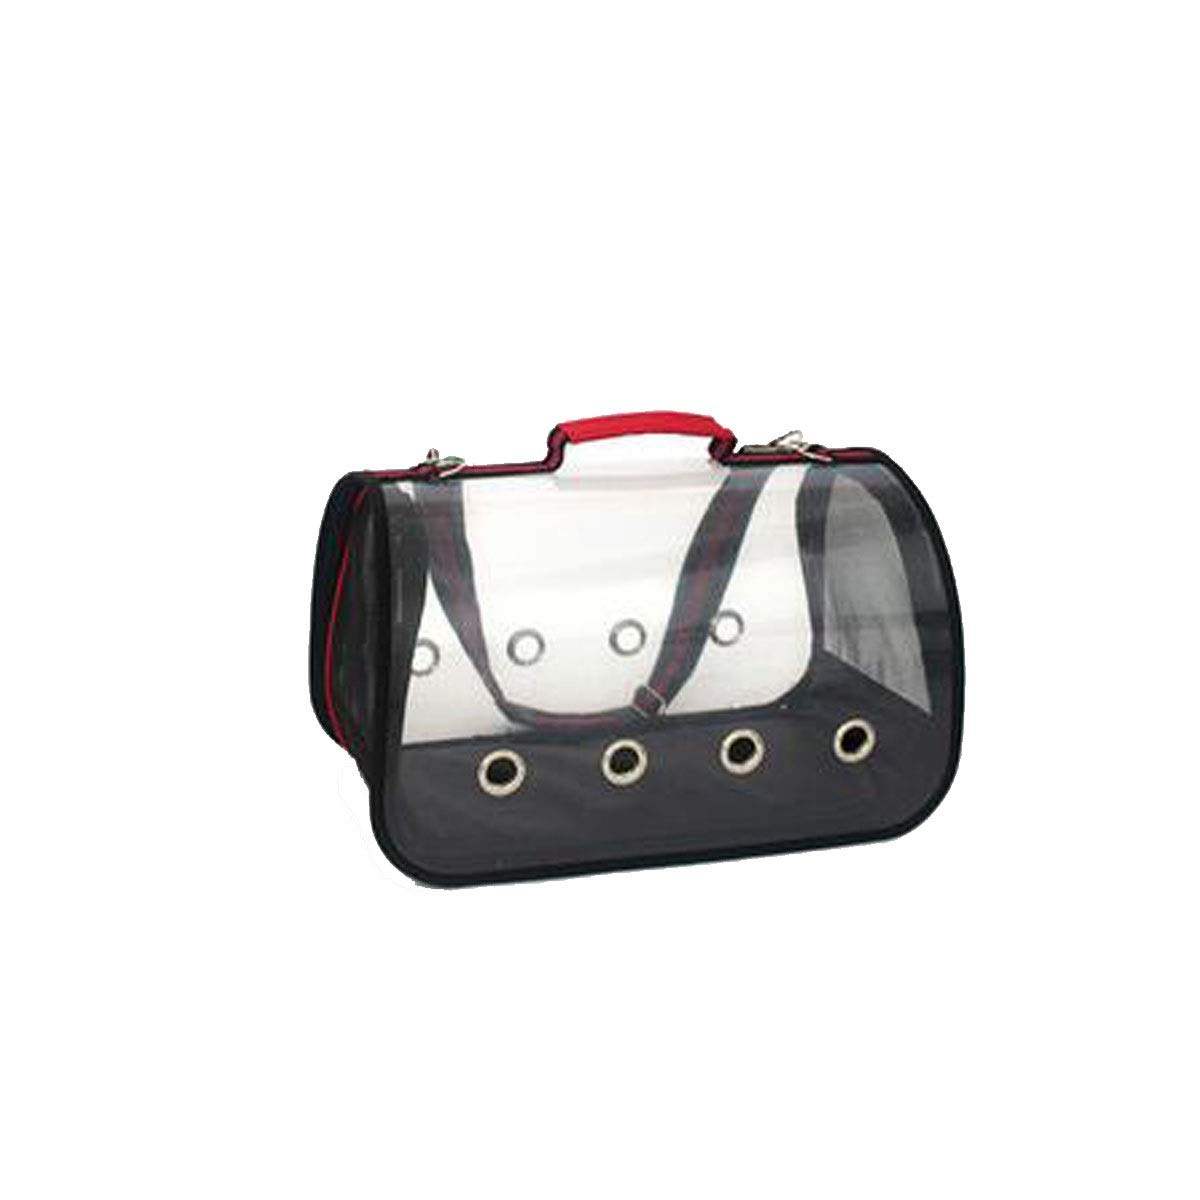 Red Fully Transparent Pet Bag, Pet Carrier Suitable for Outdoor Travel, Hiking, Camping Pet Bag Teddy, Cat Outing Package (color   Red)